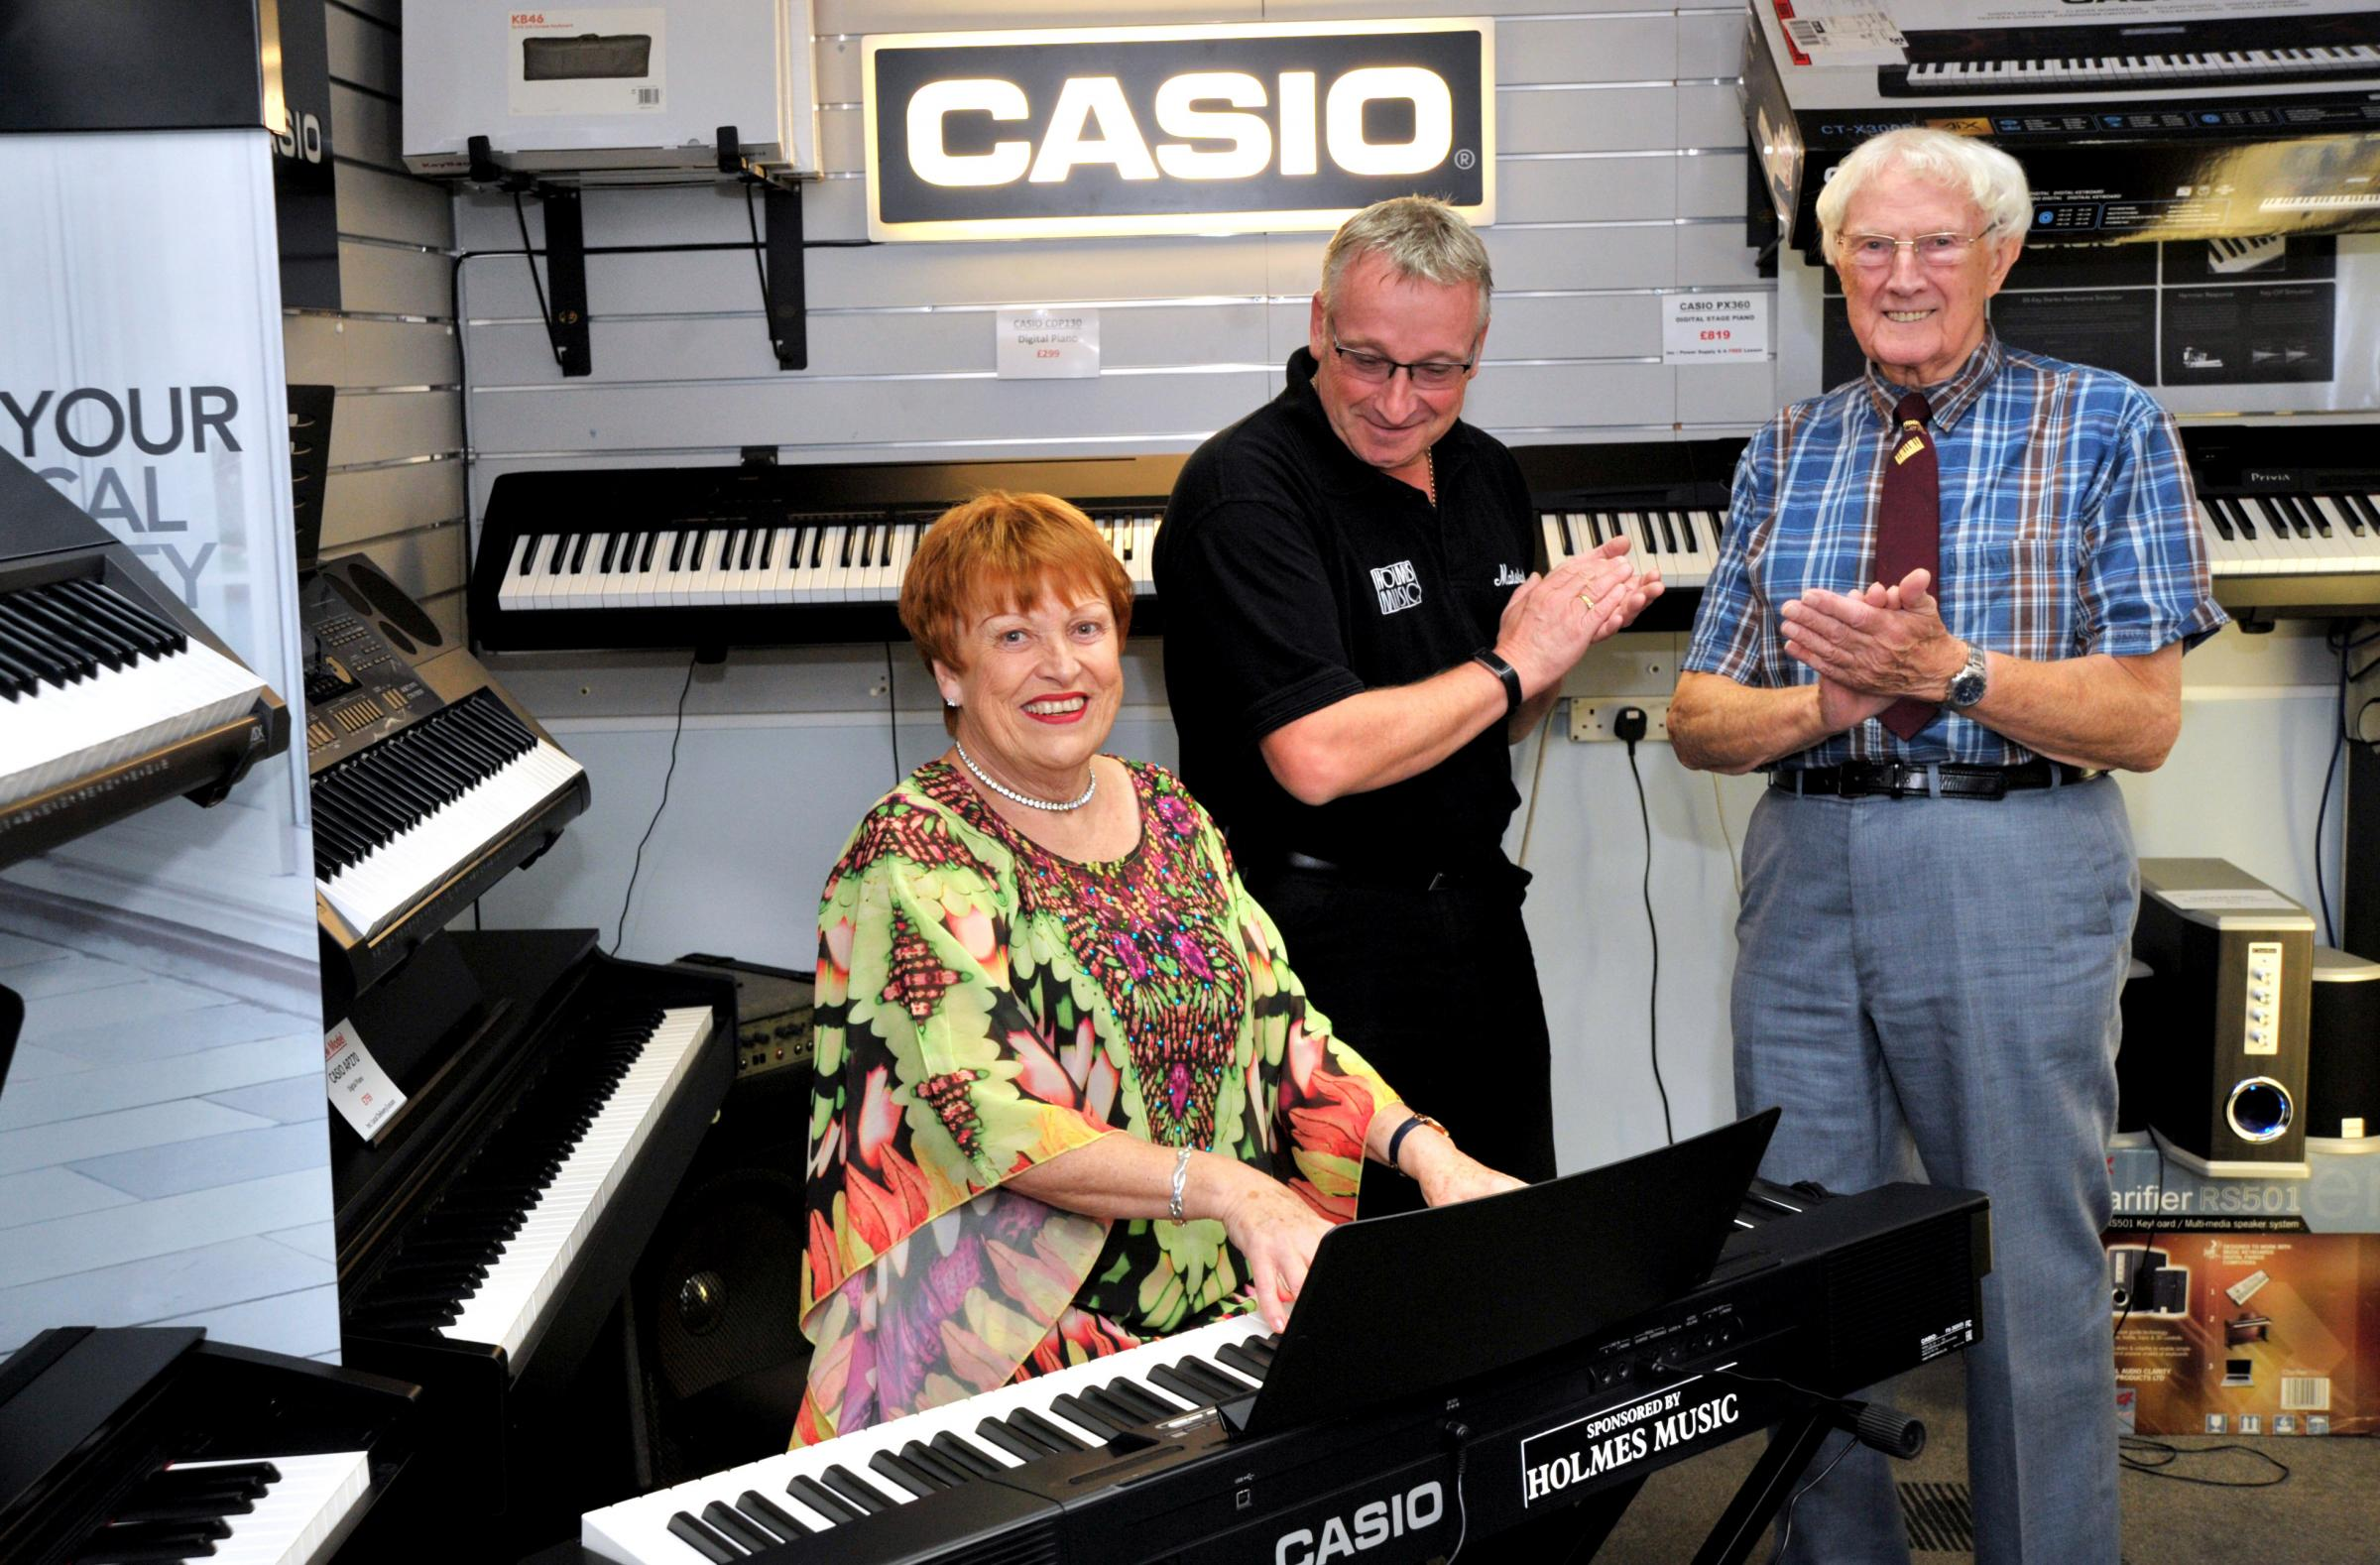 Trying out the new piano is Sheila Harrod, from Kentwood Show Choir watched by Alan and John Holmes from Holmes Music Picture: Dave Cox